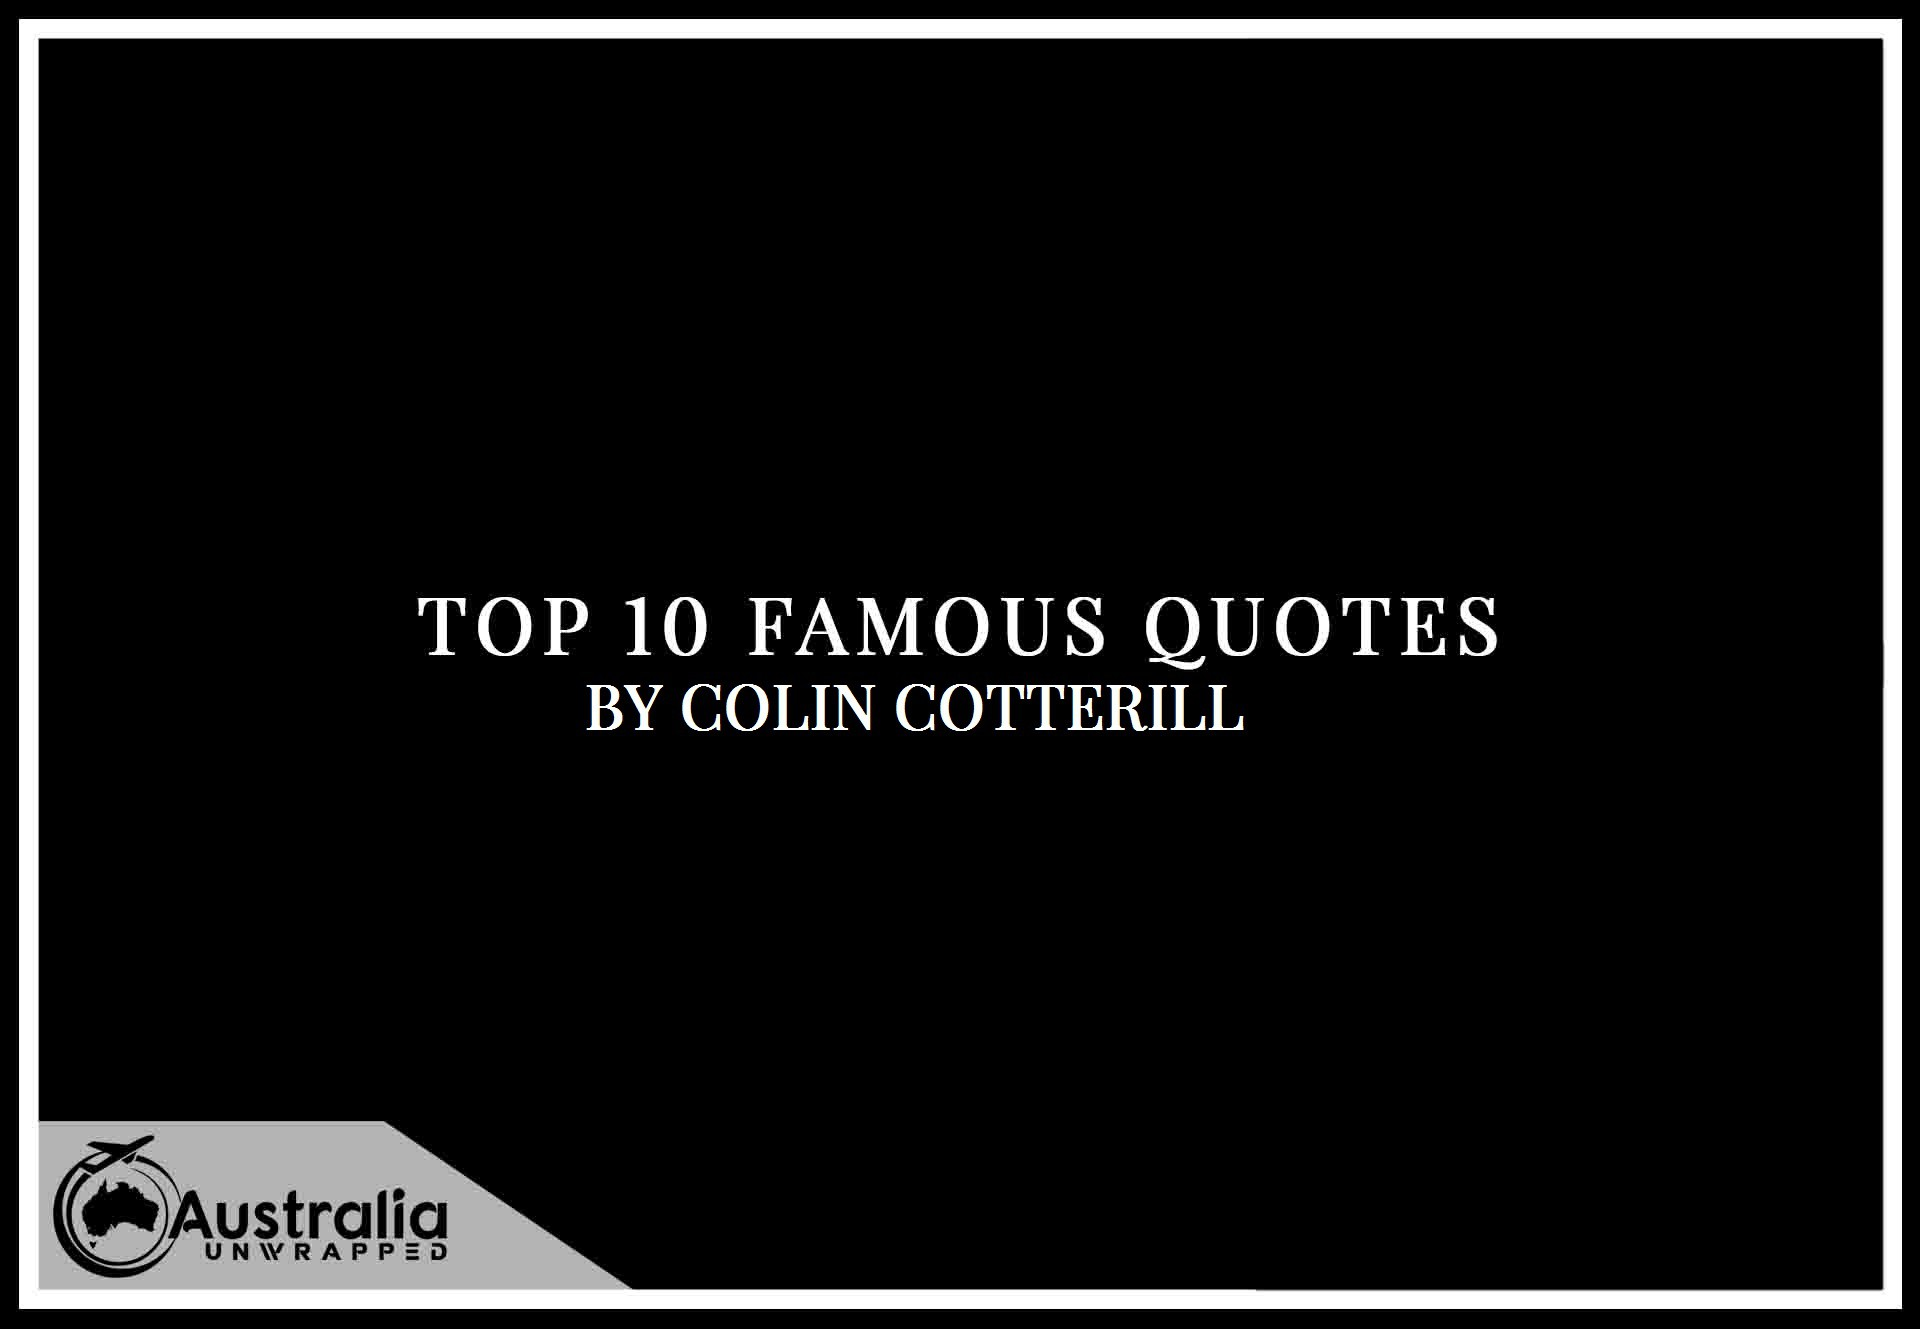 Colin Cotterill's Top 10 Popular and Famous Quotes